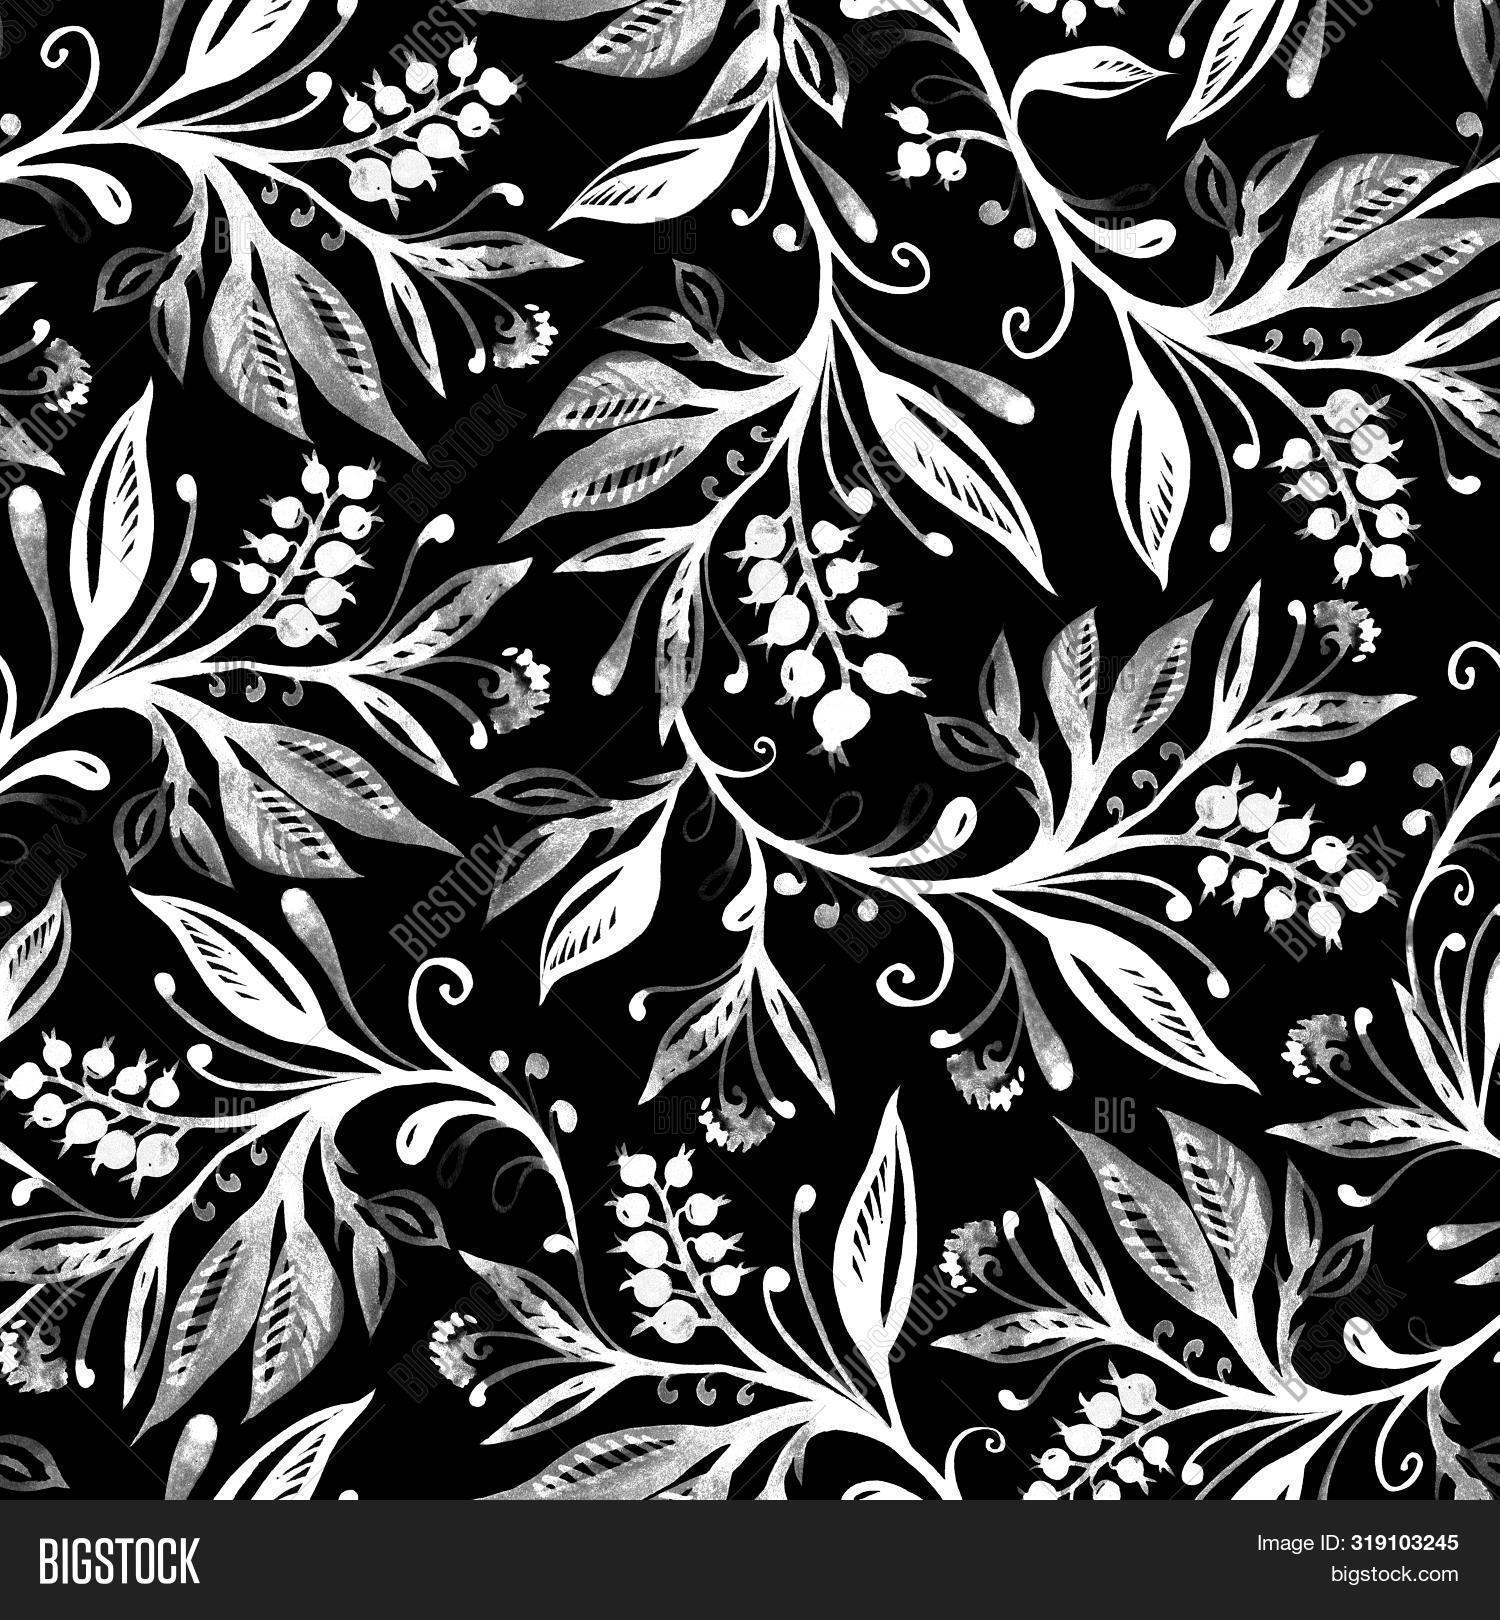 Floral Seamless Image Photo Free Trial Bigstock